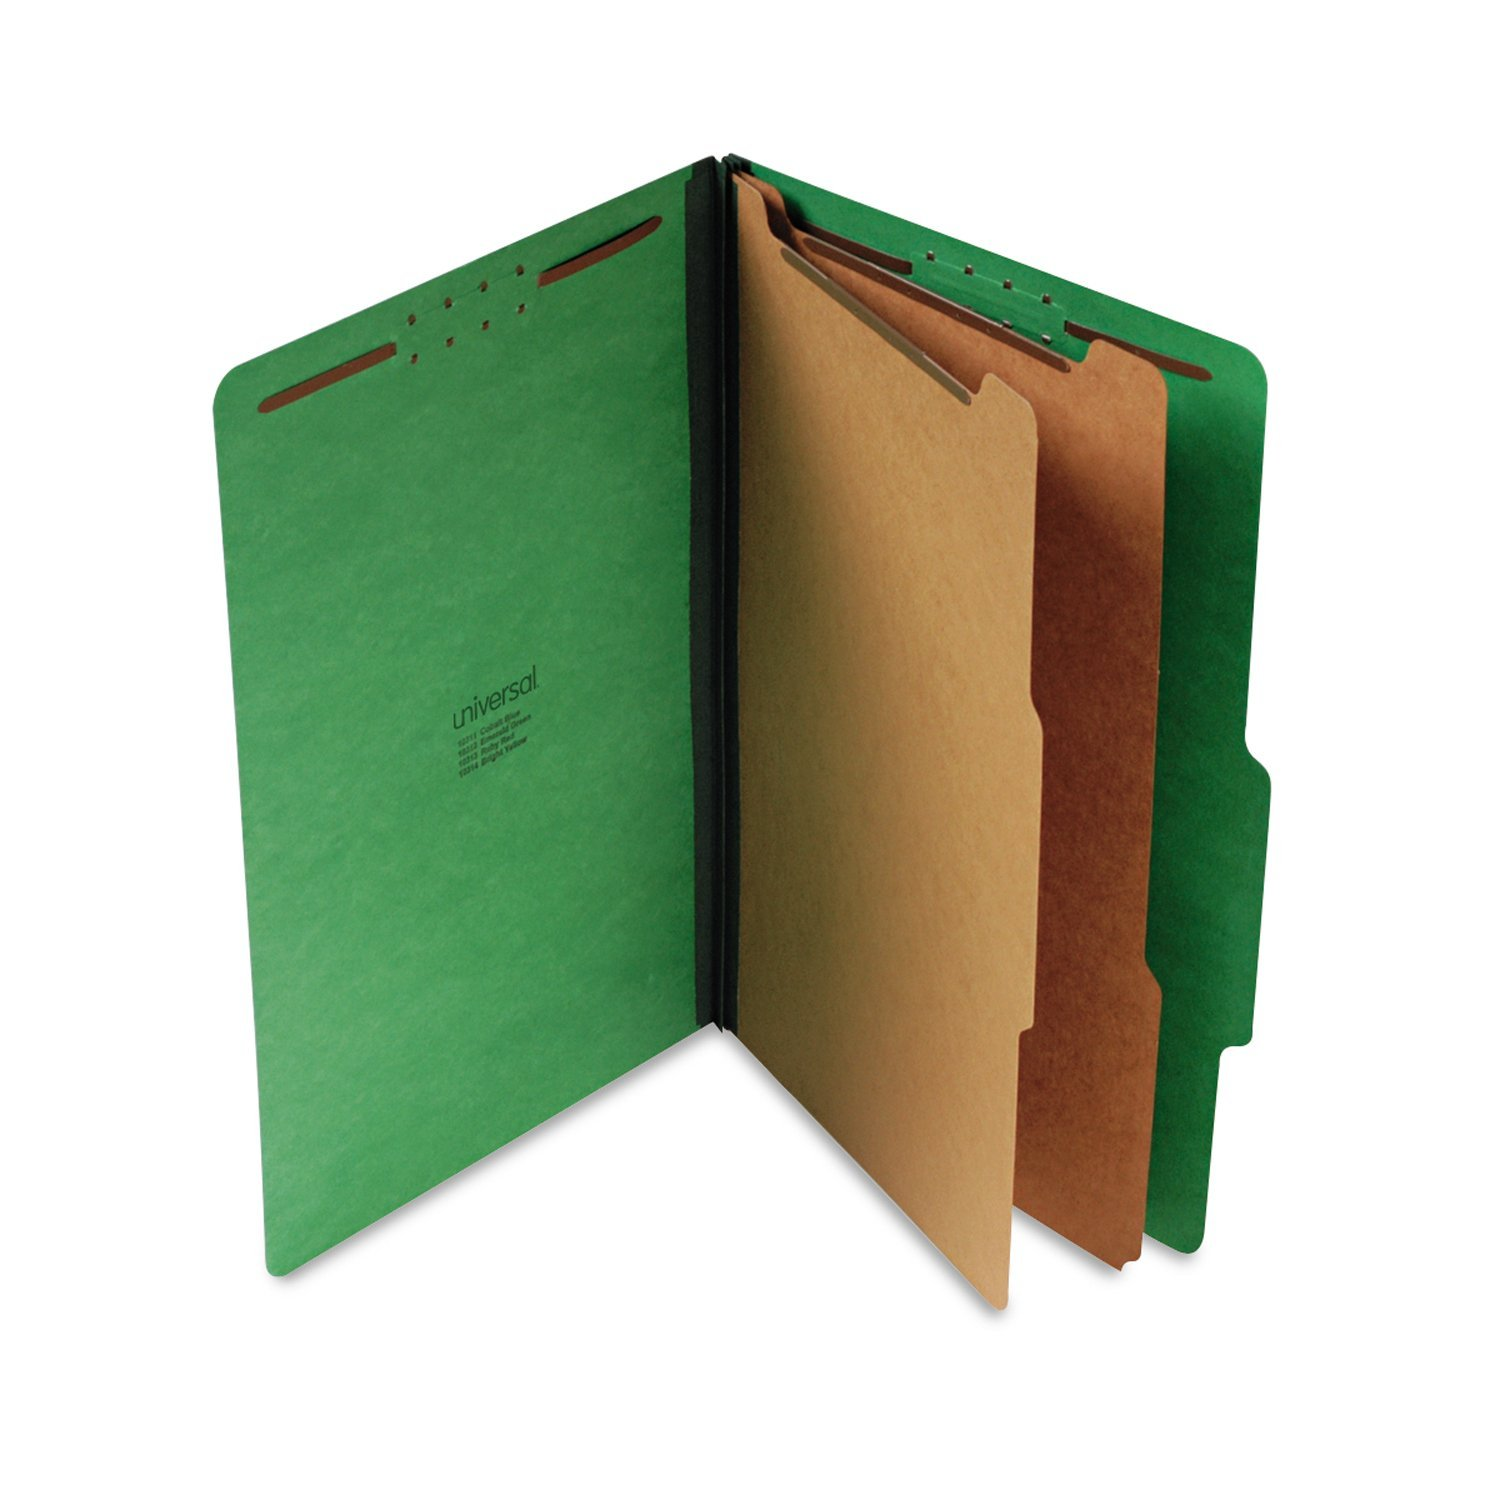 Universal Pressboard Classification Folders, Legal, Six-Section, Emerald Green, 10/Box (10312) by Universal